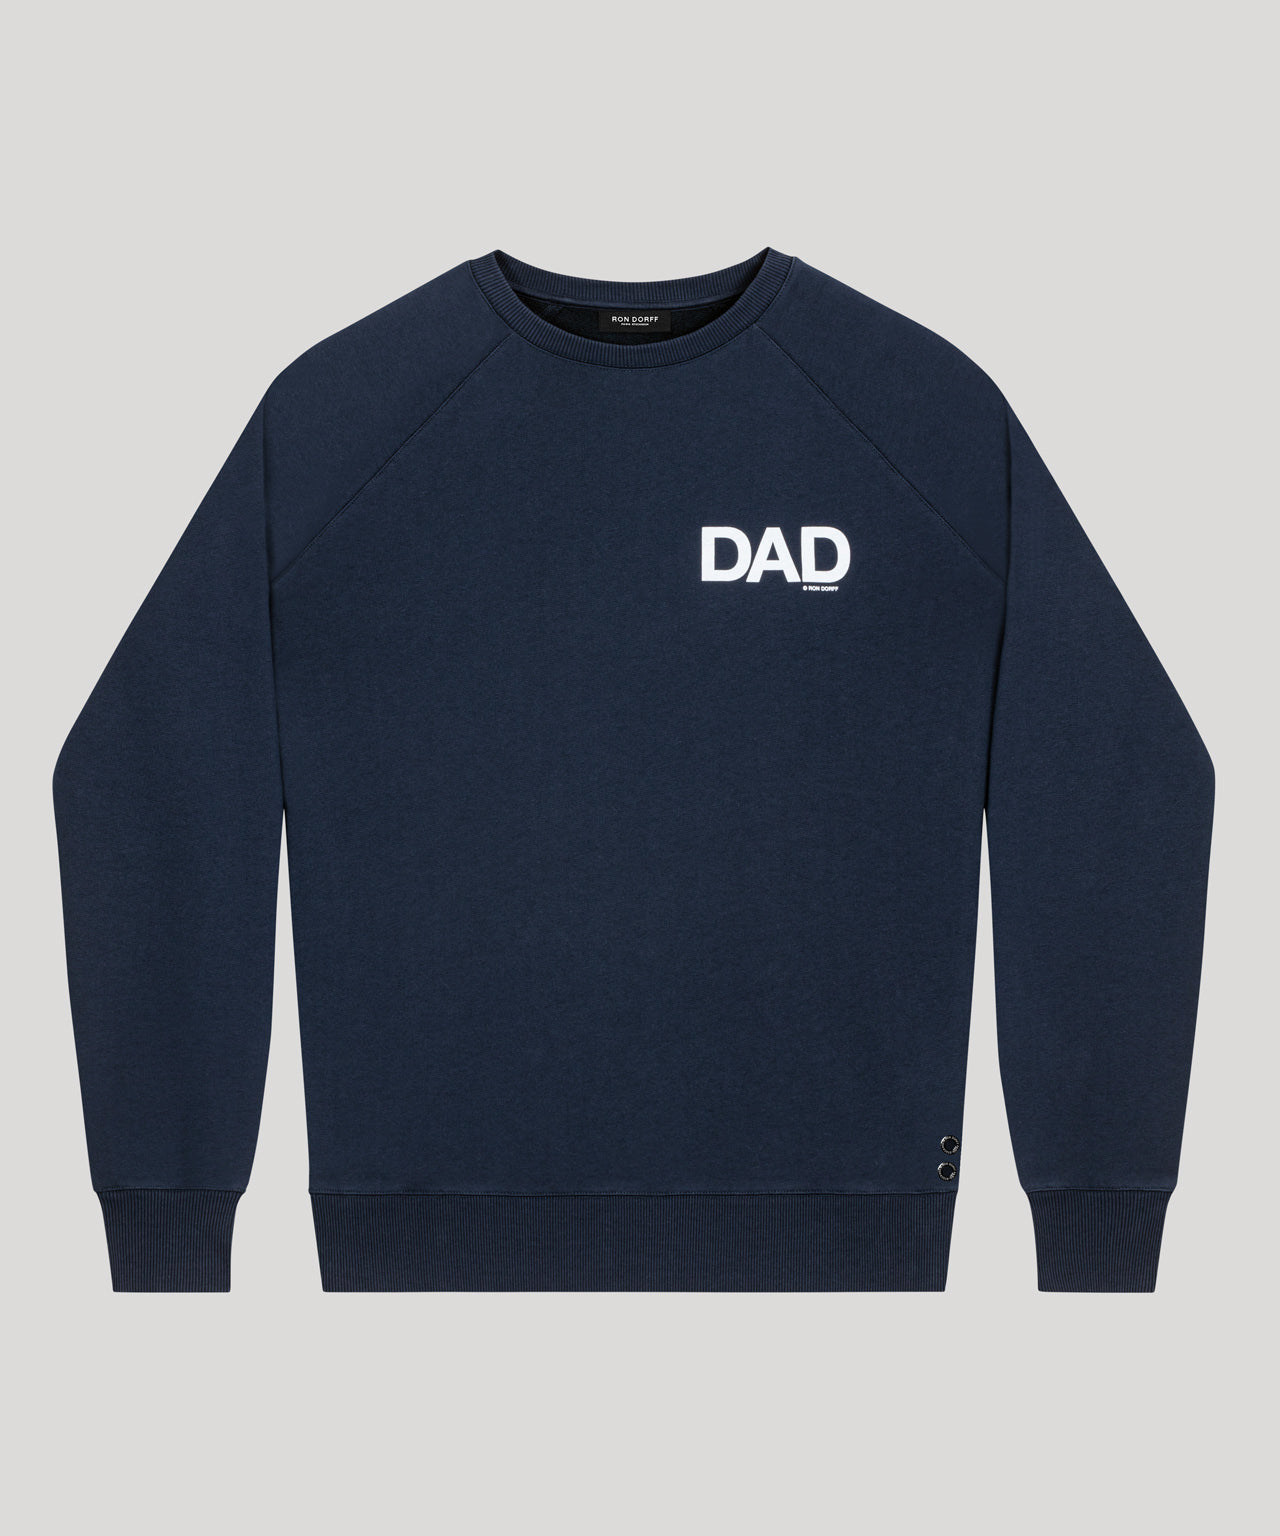 Sweatshirt DAD - navy